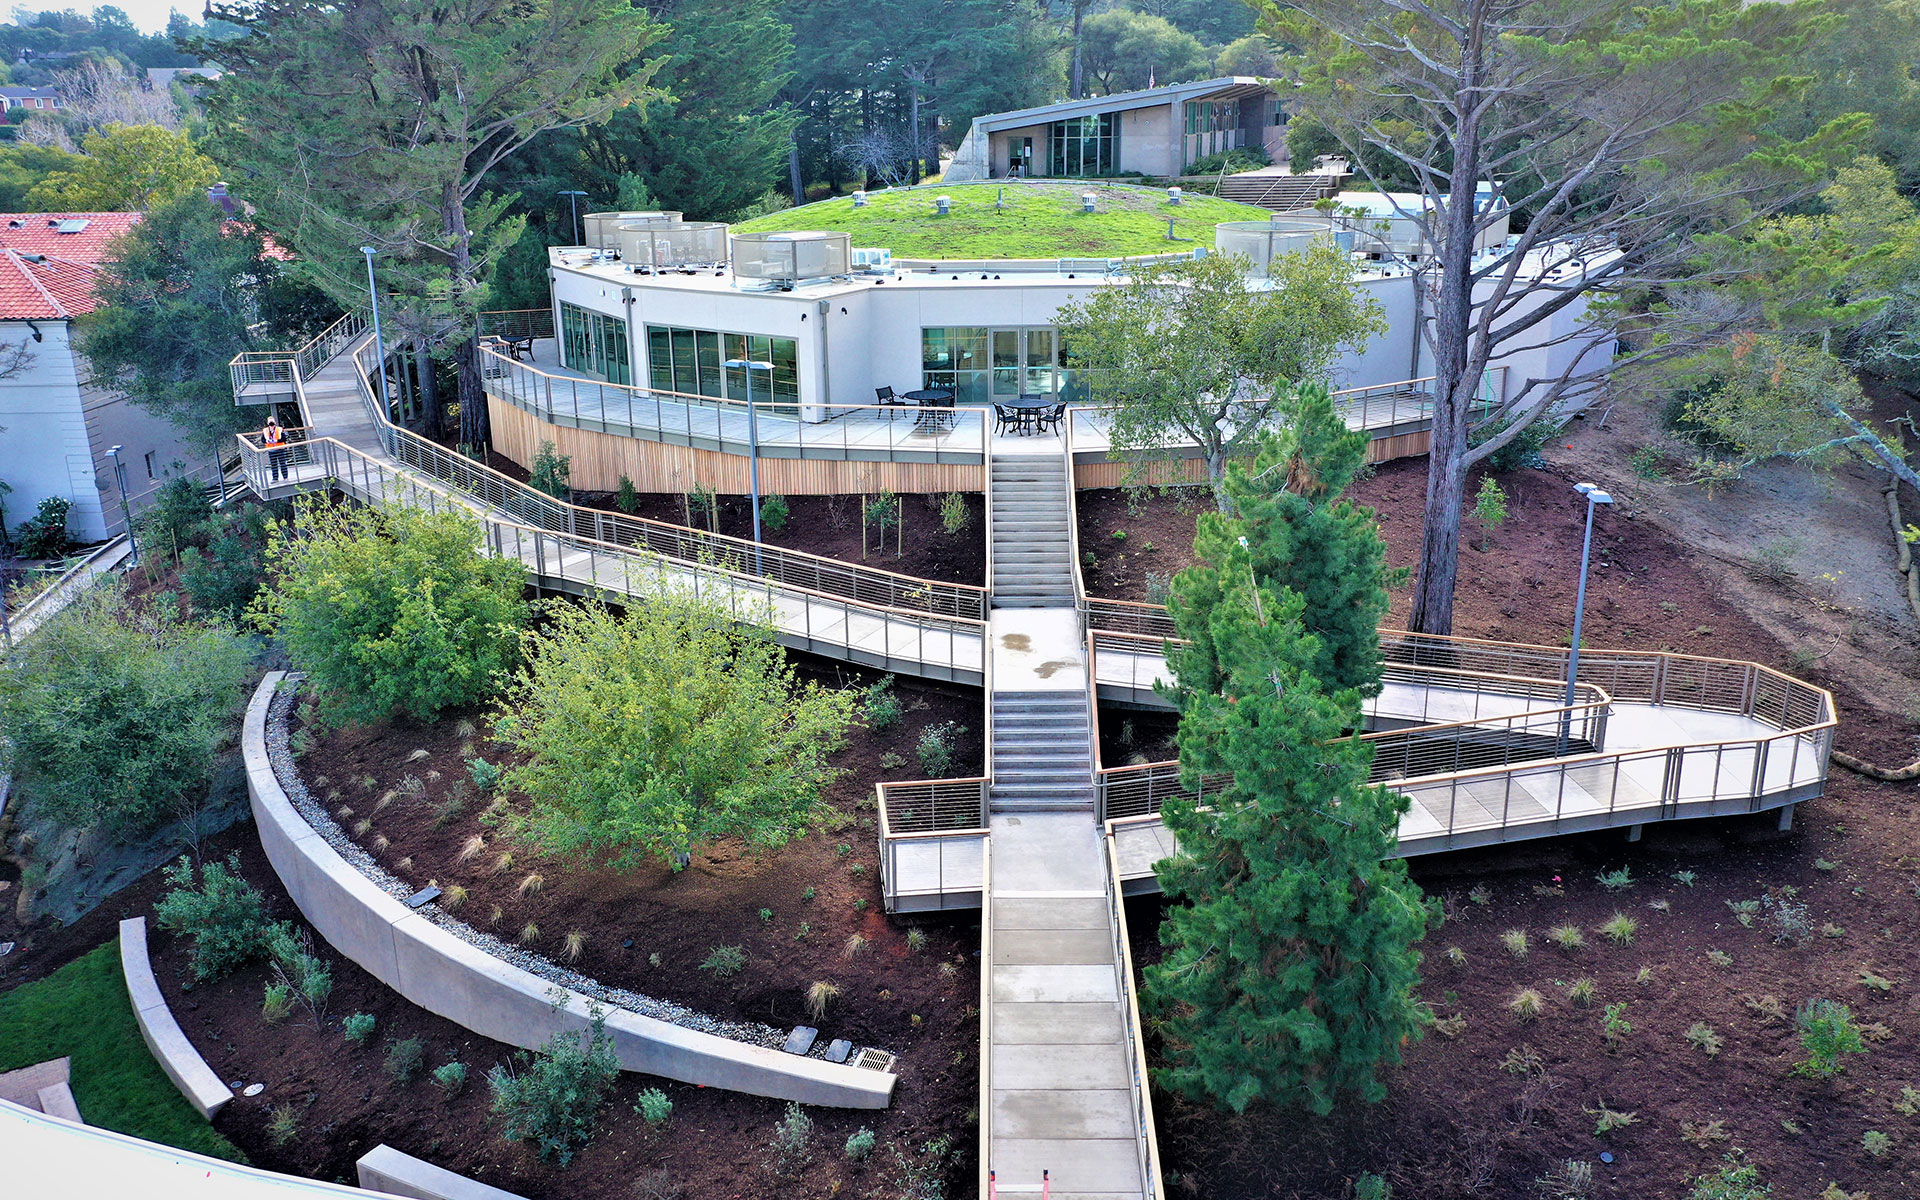 Private landscaping on hill with stairs leading up to home